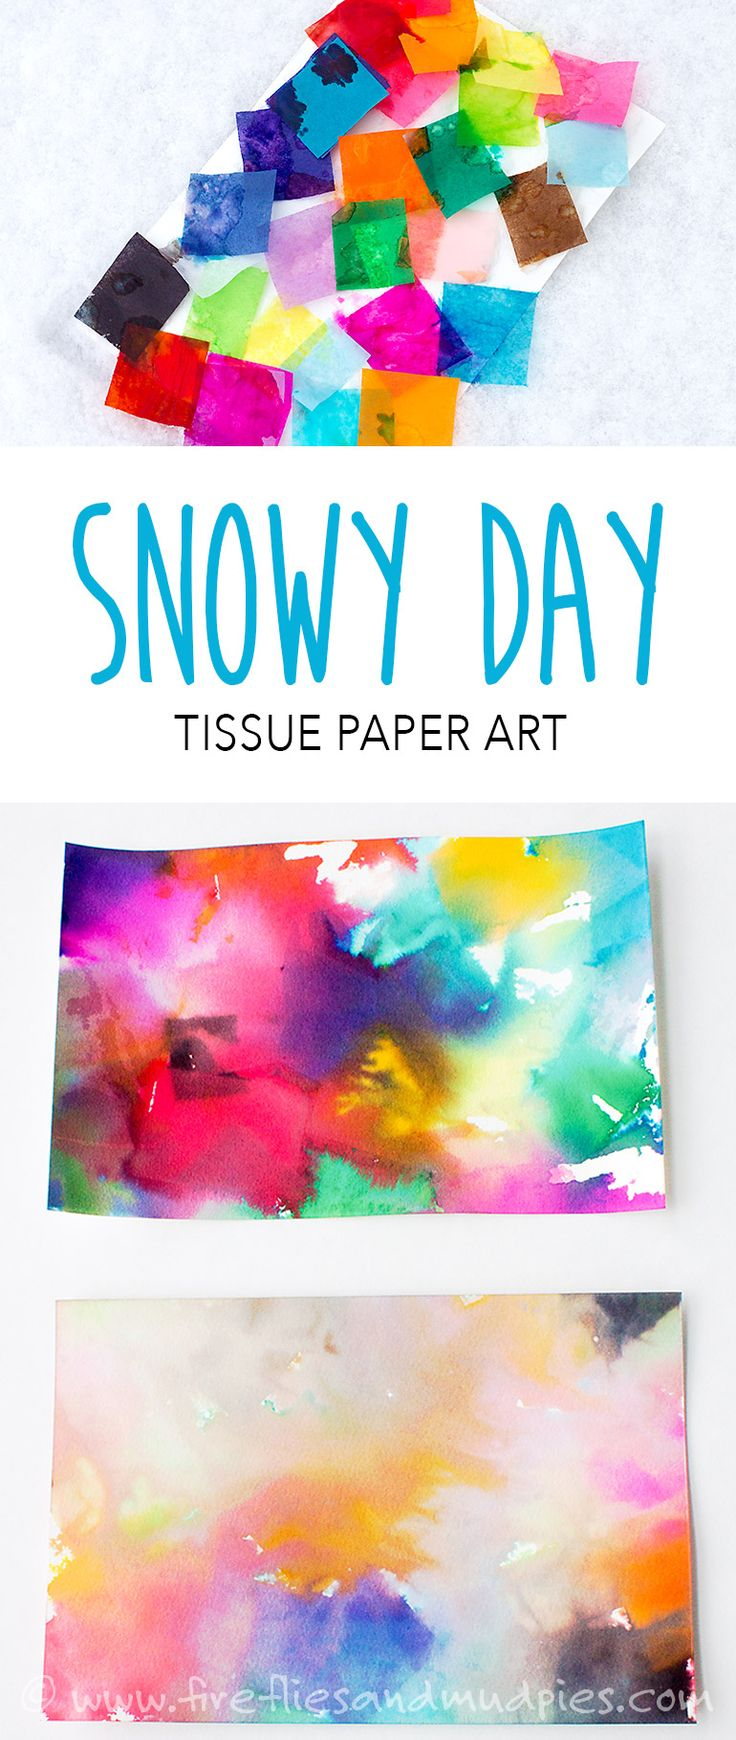 Check out this fun art project! Perfect to do on a cold winter's day!